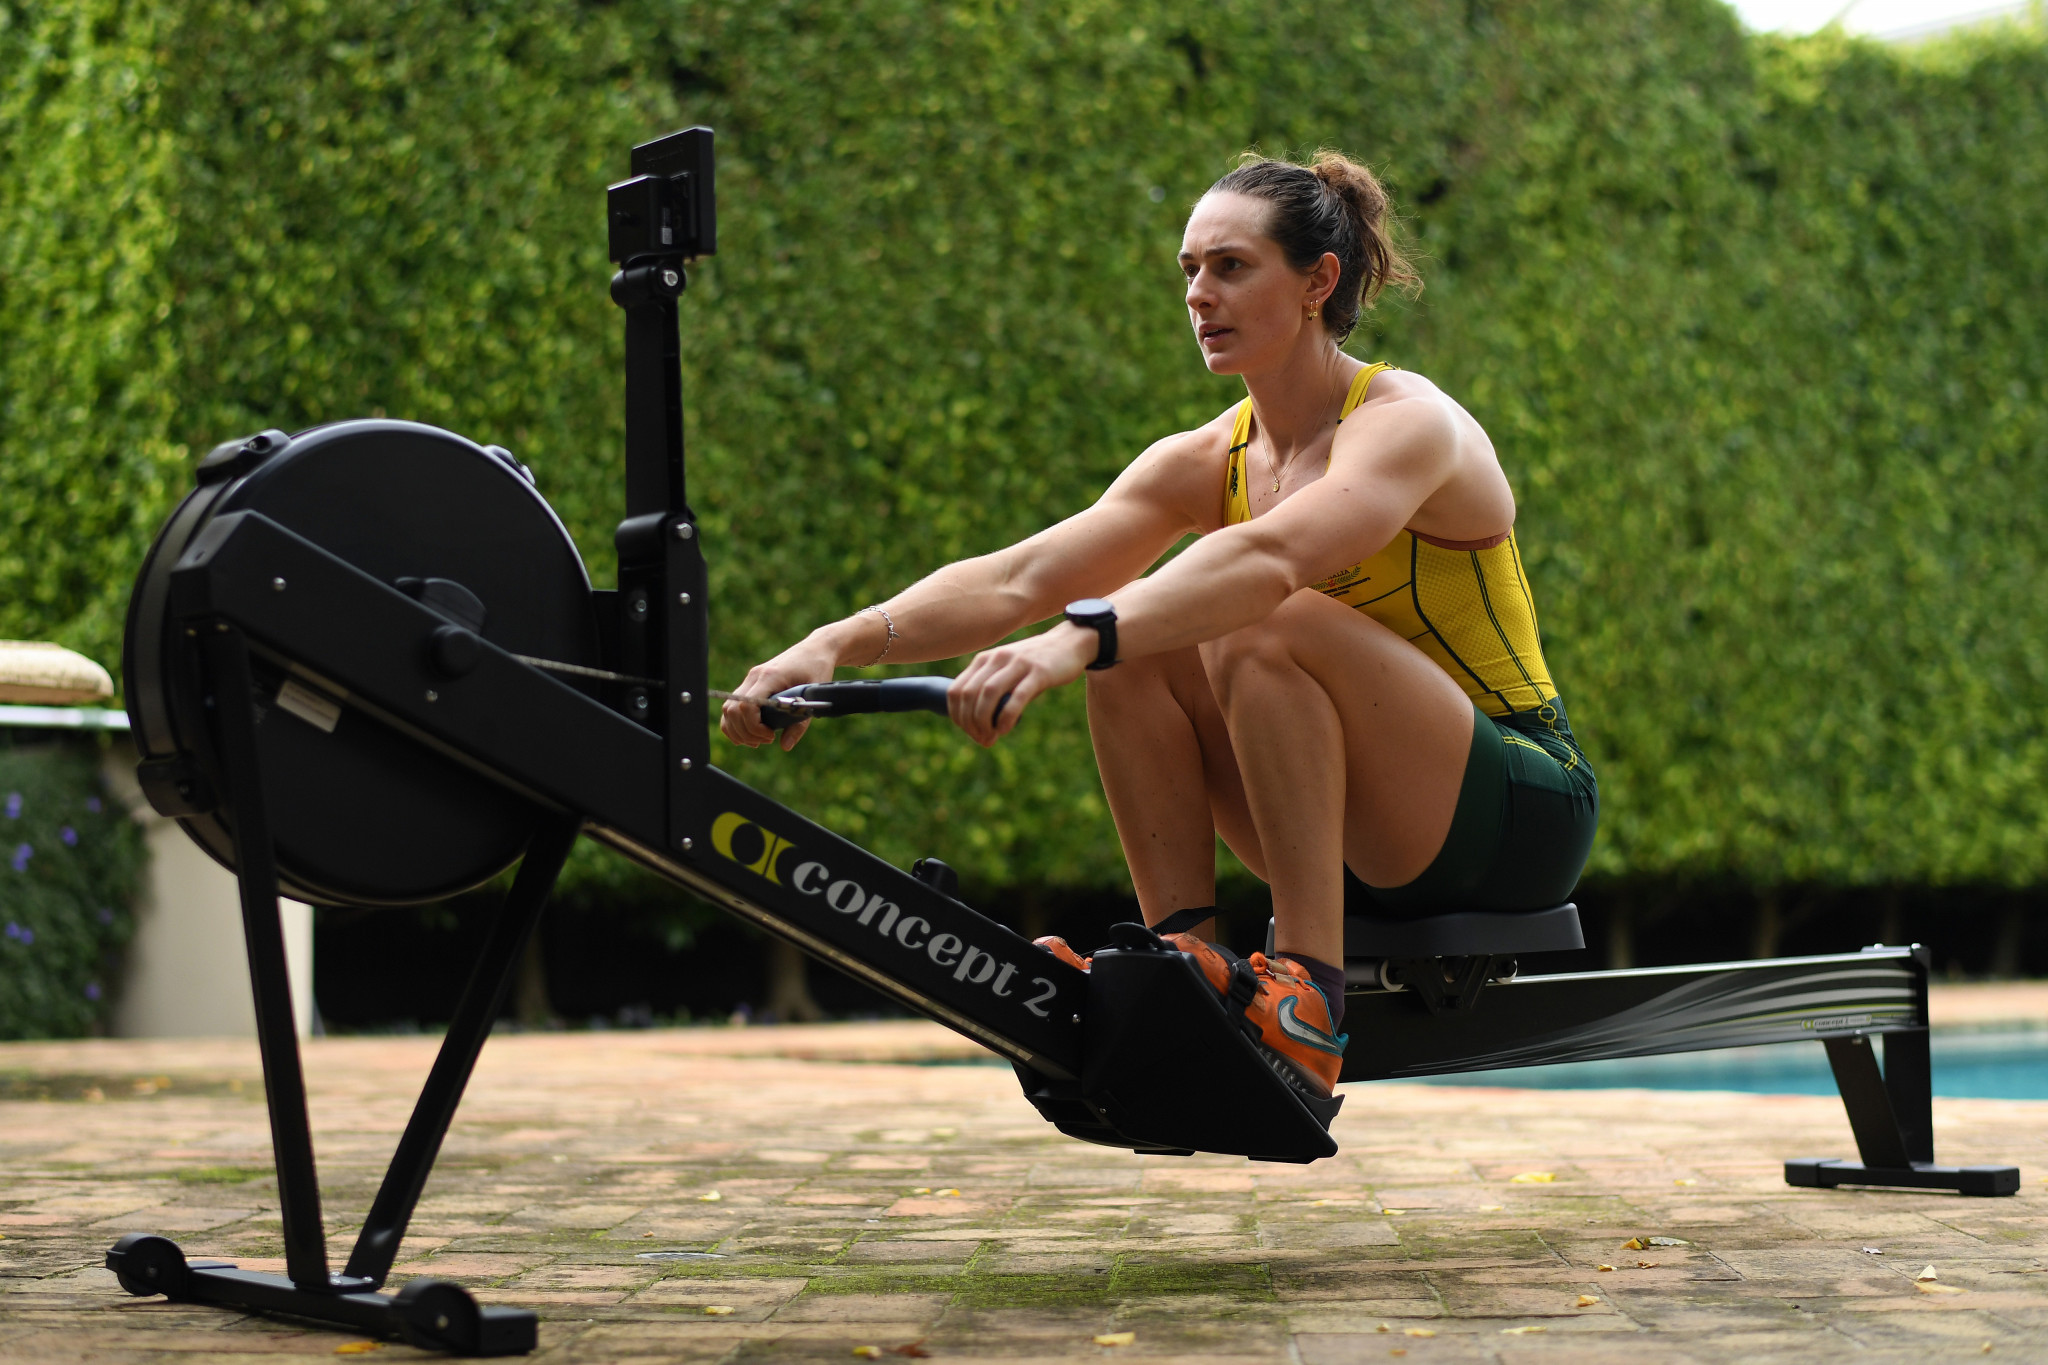 Anyone who can access a Concept2 static rowing machine will be able to enter the 2021 World Rowing Indoor Championships ©Getty Images